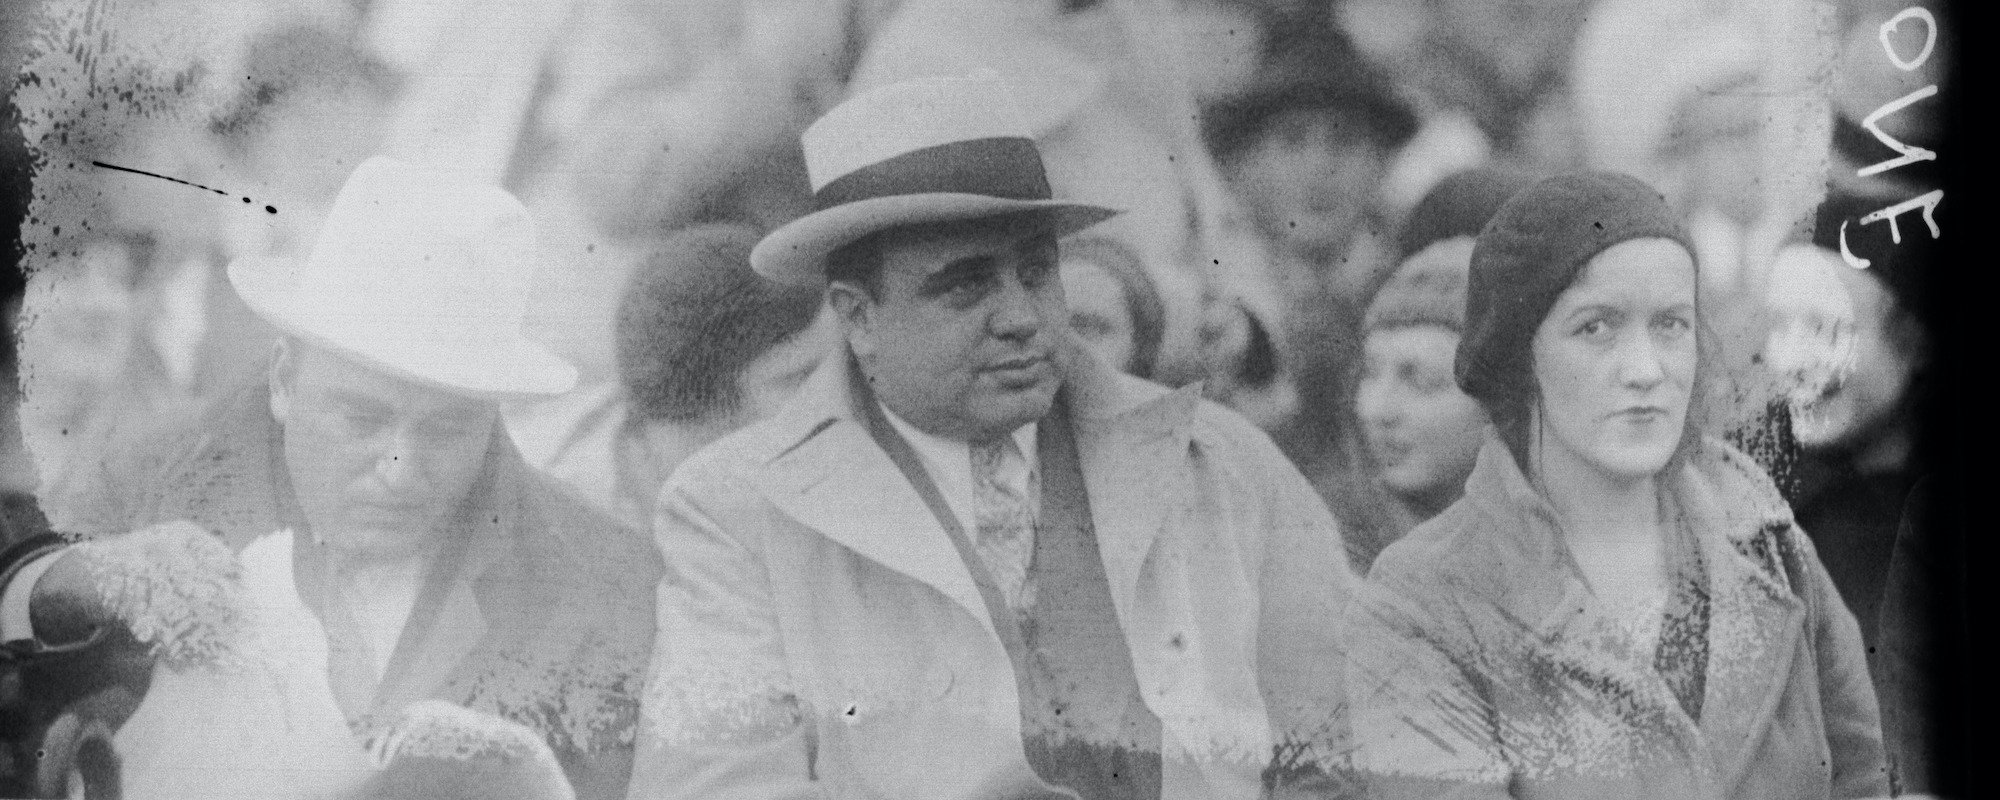 Al Capone Watching Baseball Featured